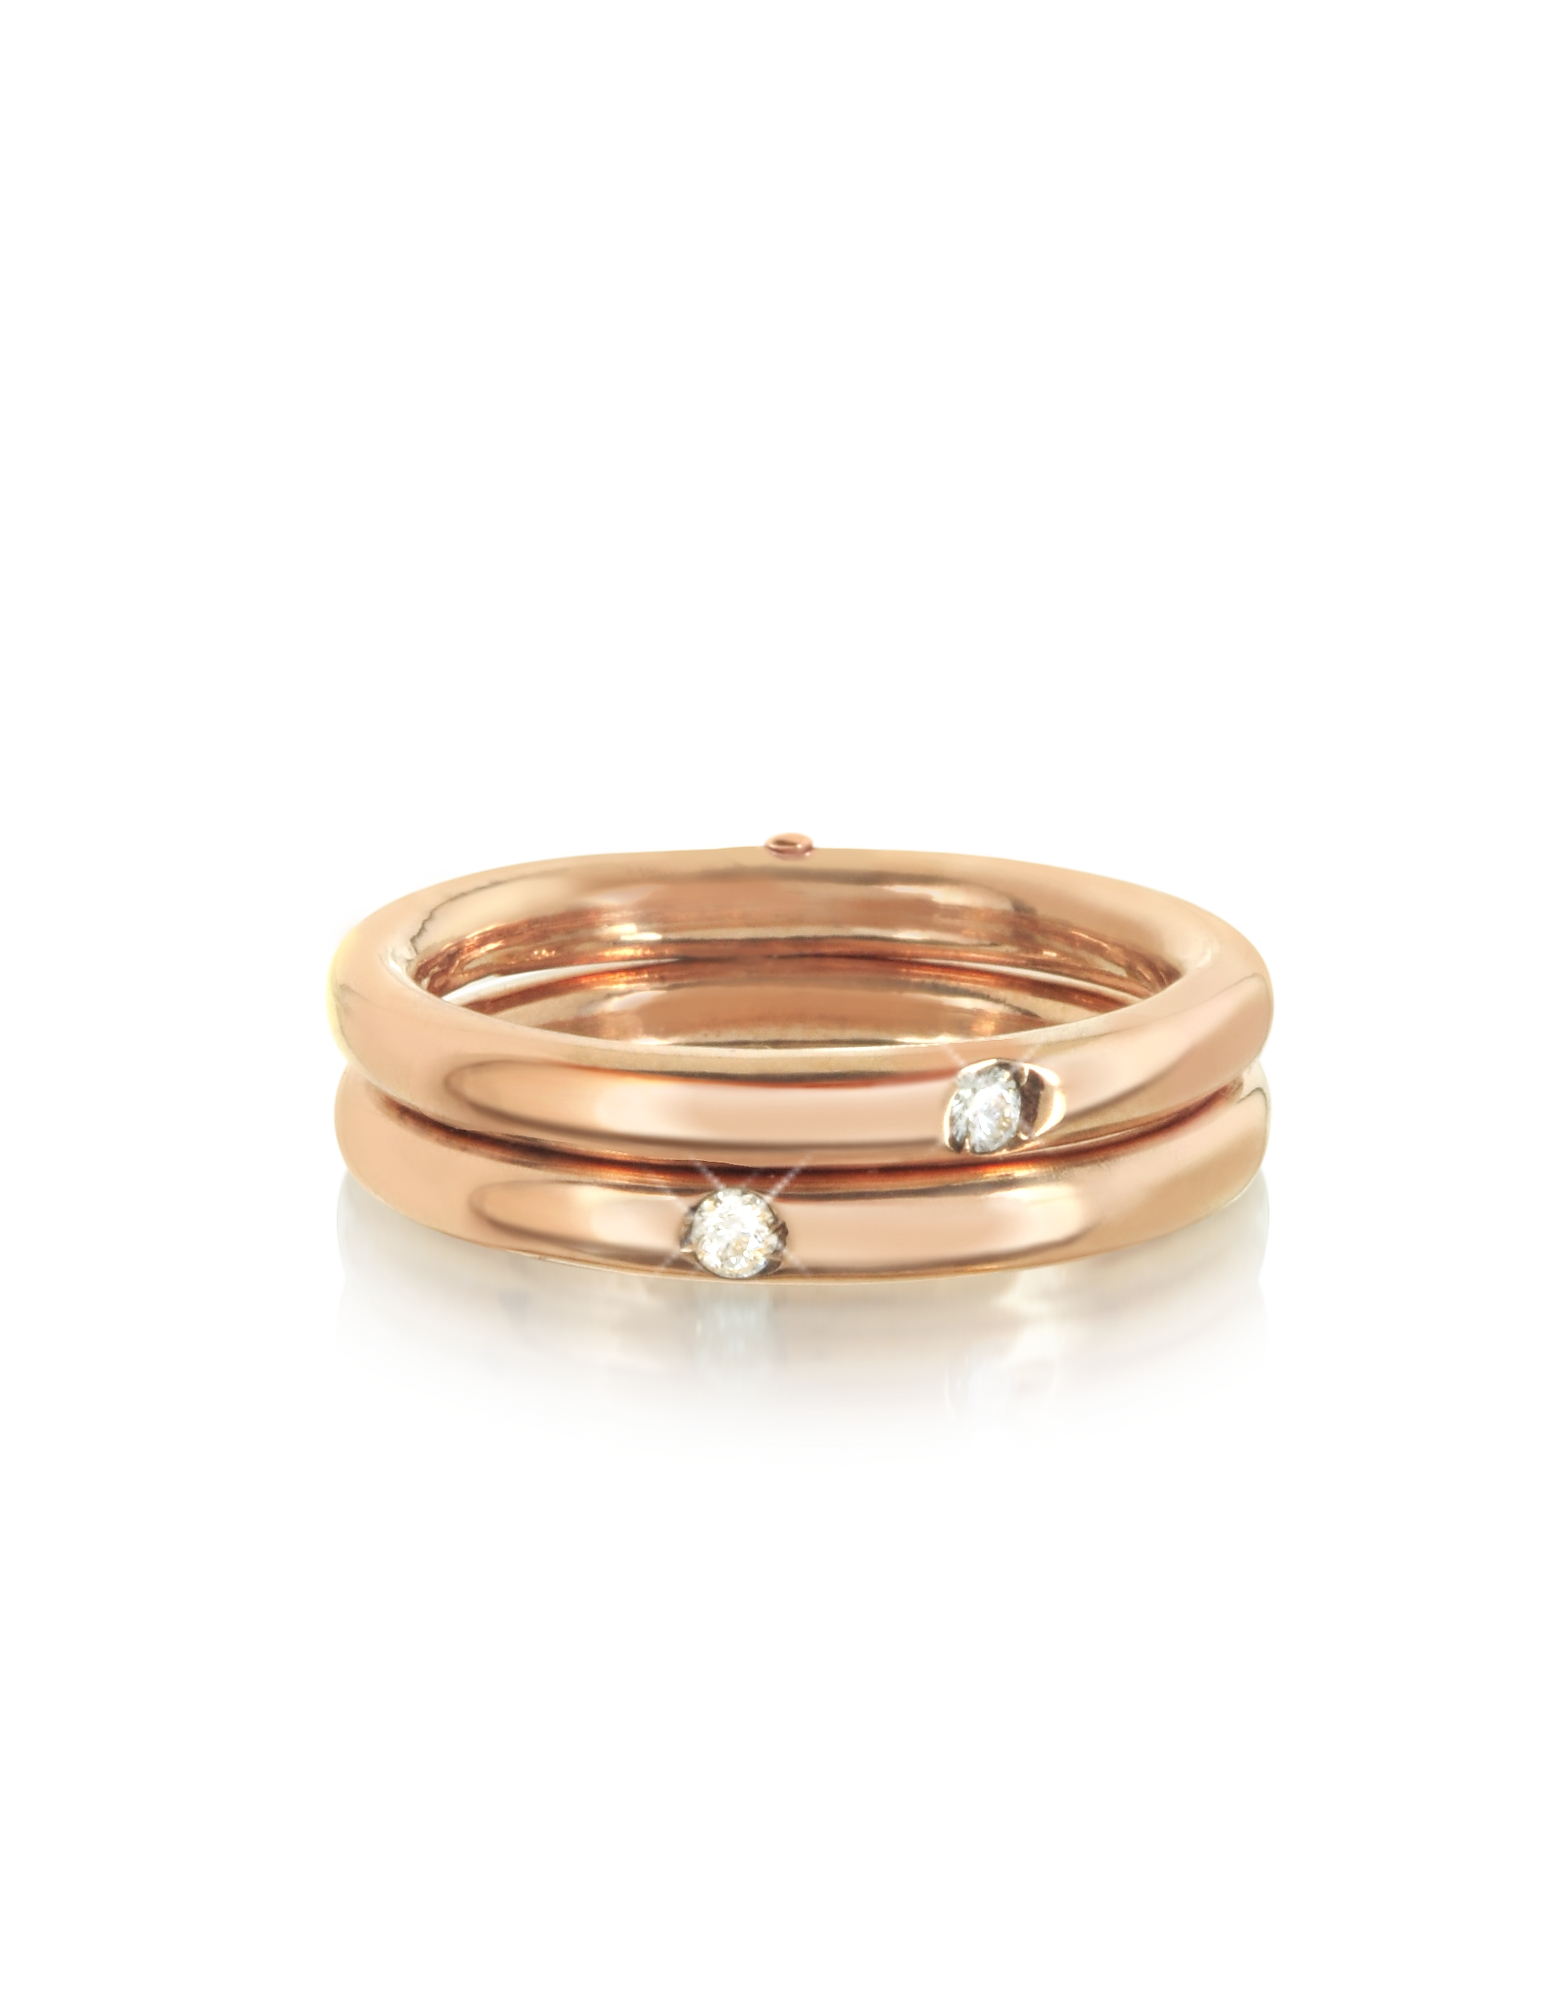 Bernard Delettrez Rings, 18K Pink Gold Double Secret Ring w/Diamonds